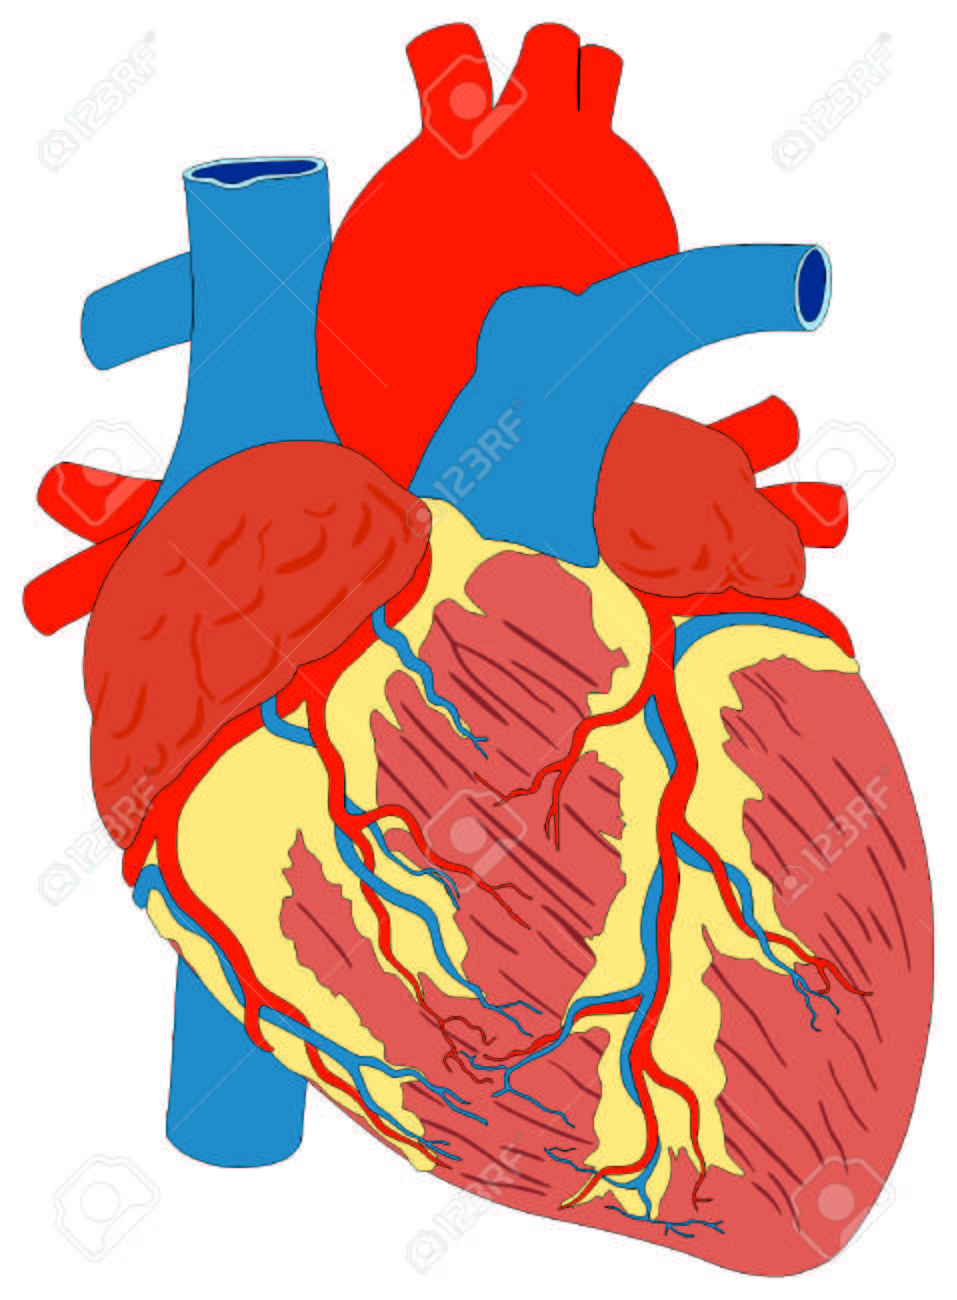 unlabeled heart diagram cross section outlet switch combo wiring human muscle gross anatomy vector outside view with all parts aorta aortic arch